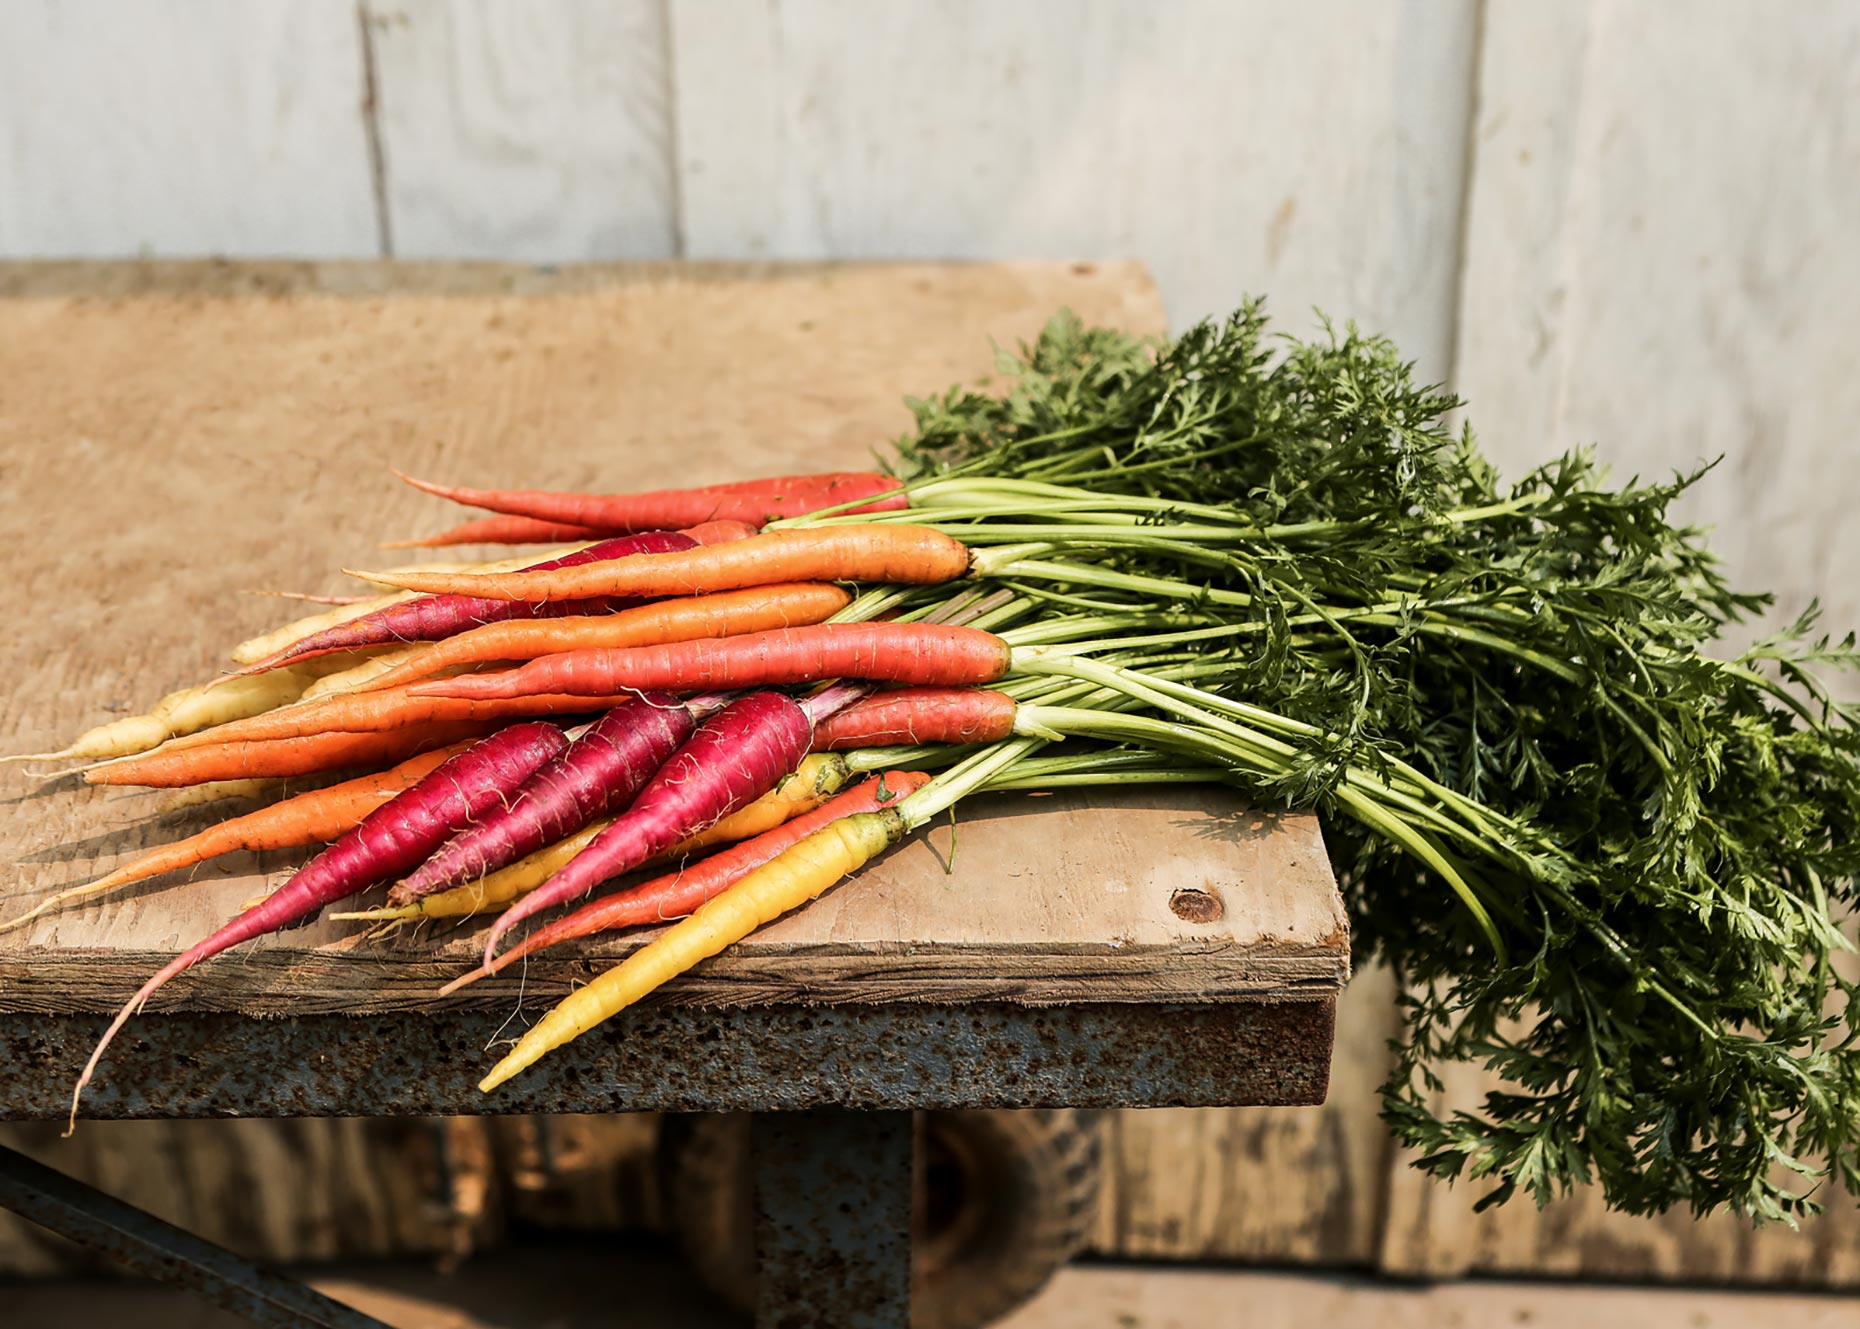 Rainbow-Carrots-Farm-Food-Fresh-Photography-Photographer-Rick-Holbrook-Still-Life-NYC-New-York